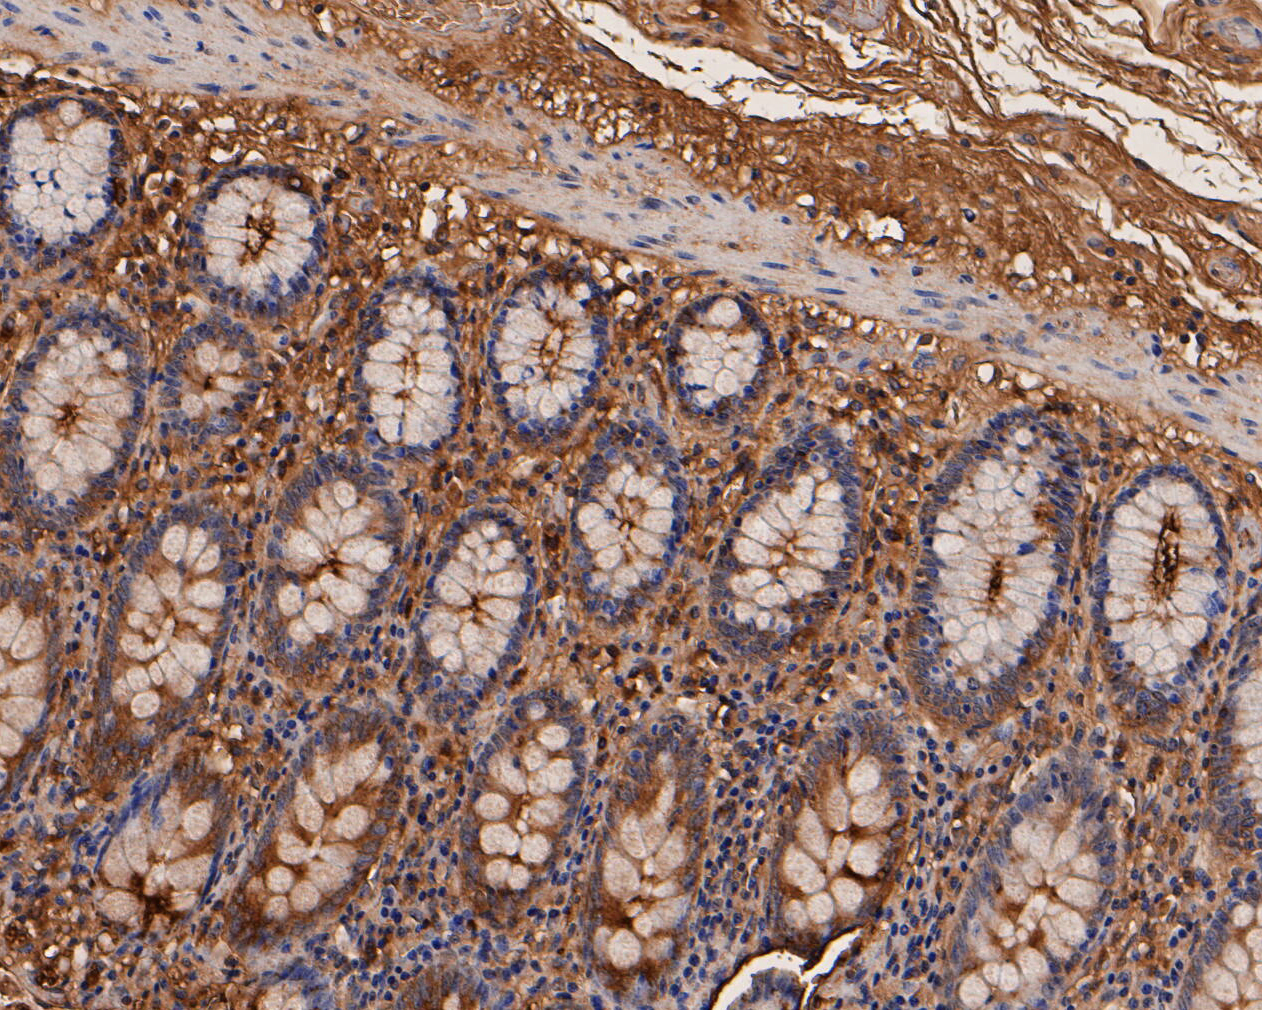 Immunohistochemical analysis of paraffin-embedded human colon tissue using anti-CEACAM6 antibody. The section was pre-treated using heat mediated antigen retrieval with Tris-EDTA buffer (pH 8.0-8.4) for 20 minutes.The tissues were blocked in 5% BSA for 30 minutes at room temperature, washed with ddH2O and PBS, and then probed with the primary antibody (EM1901-68, 1/200) for 30 minutes at room temperature. The detection was performed using an HRP conjugated compact polymer system. DAB was used as the chromogen. Tissues were counterstained with hematoxylin and mounted with DPX.